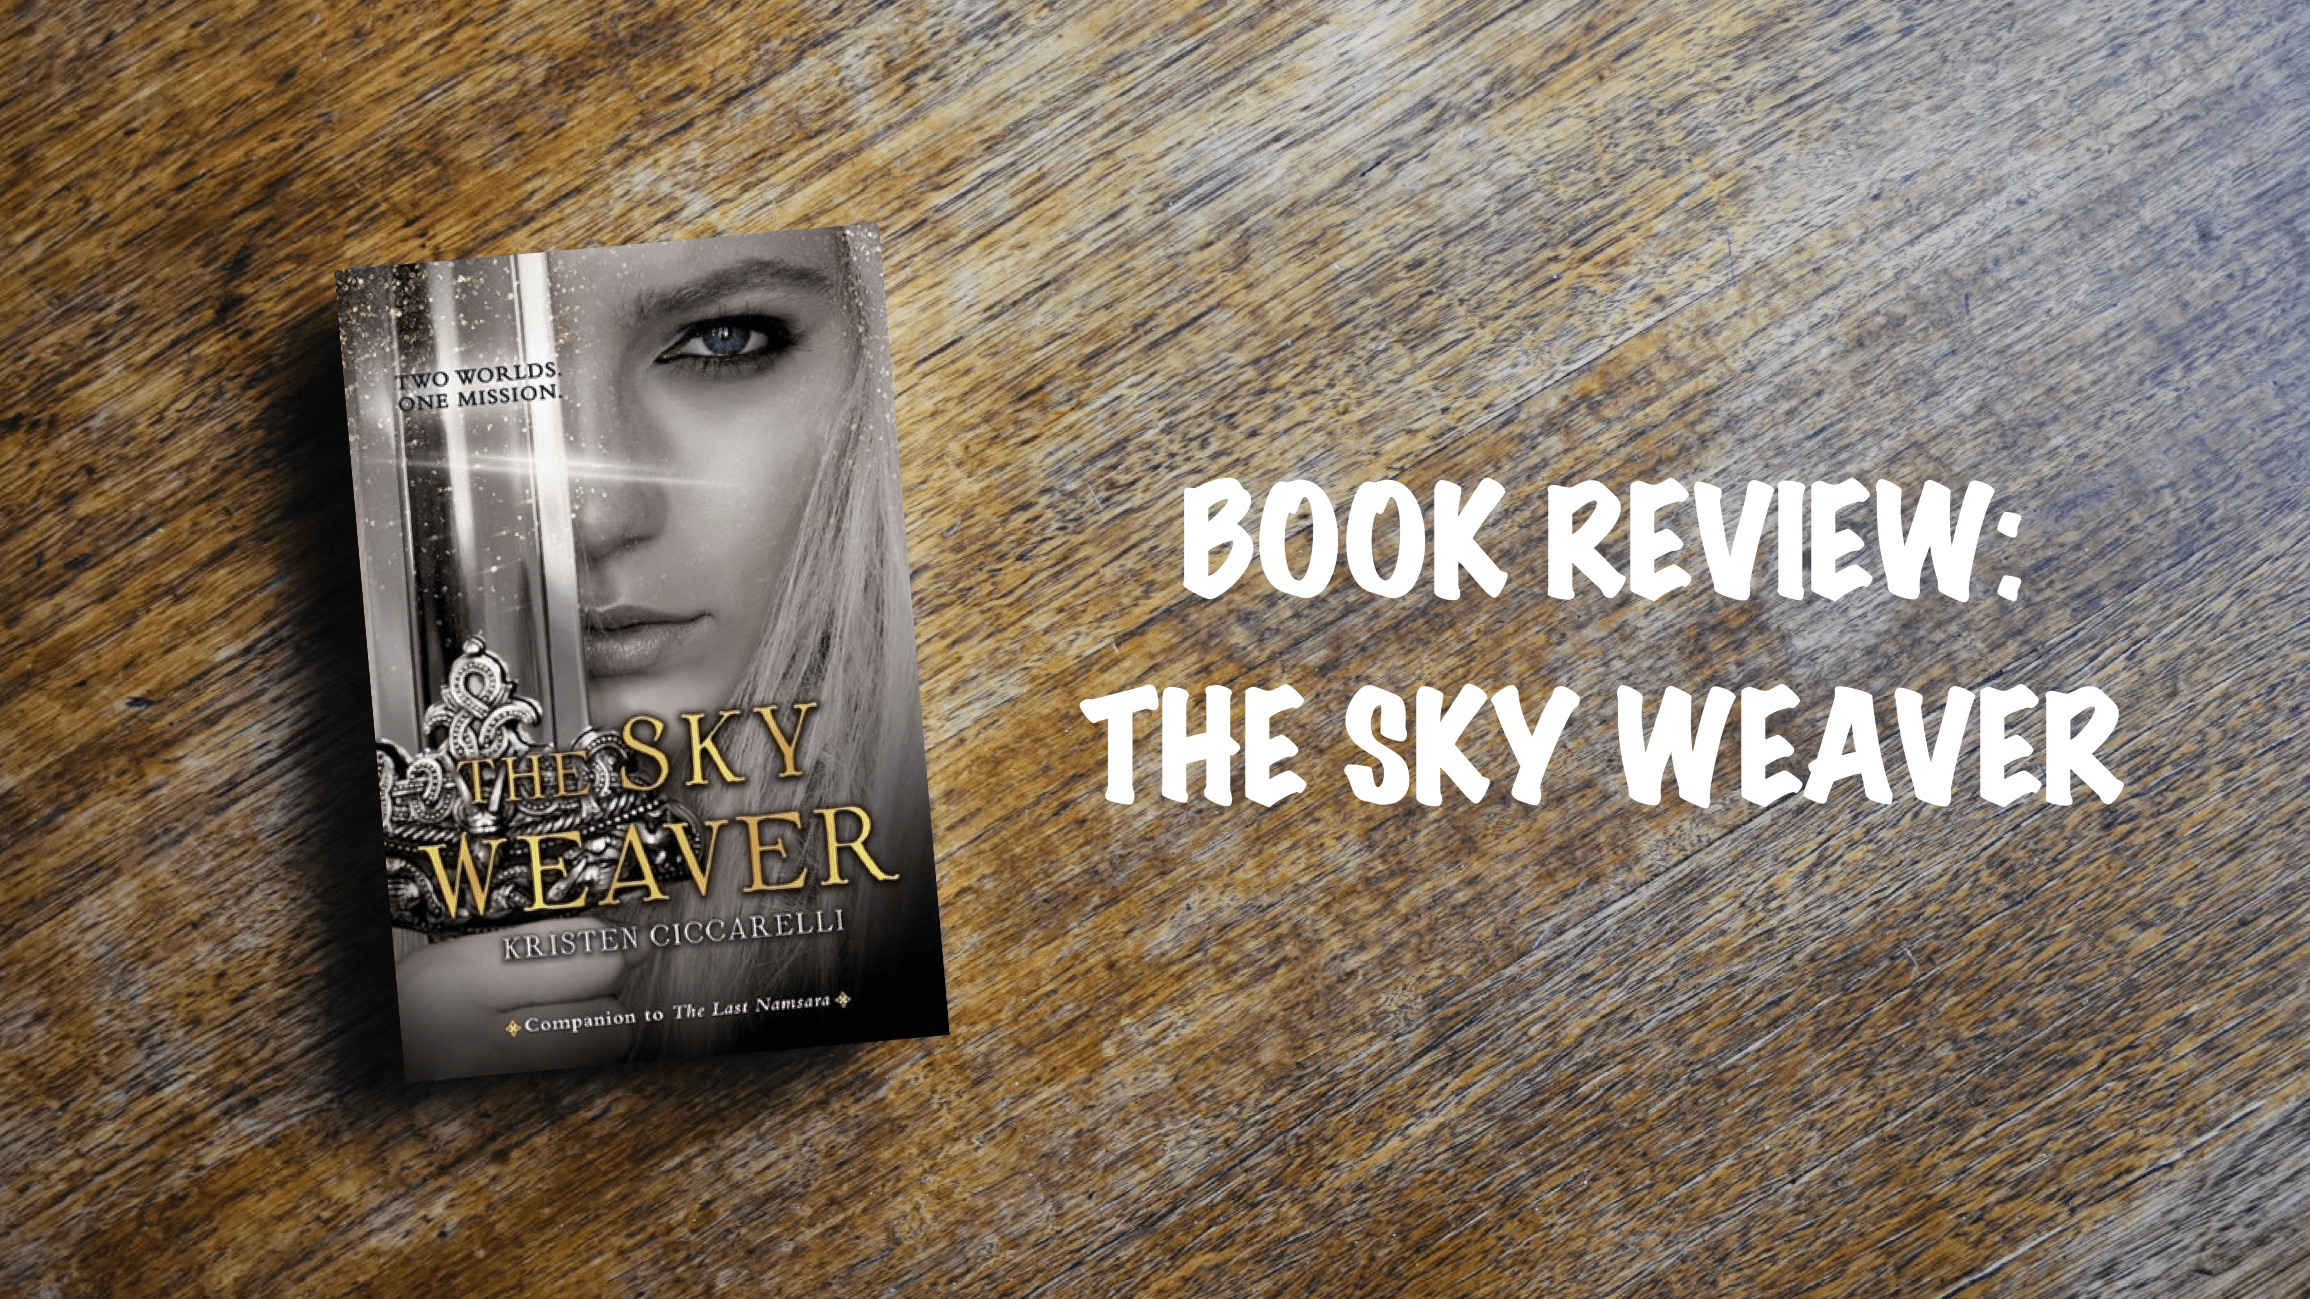 Book review banner: The Sky Weaver